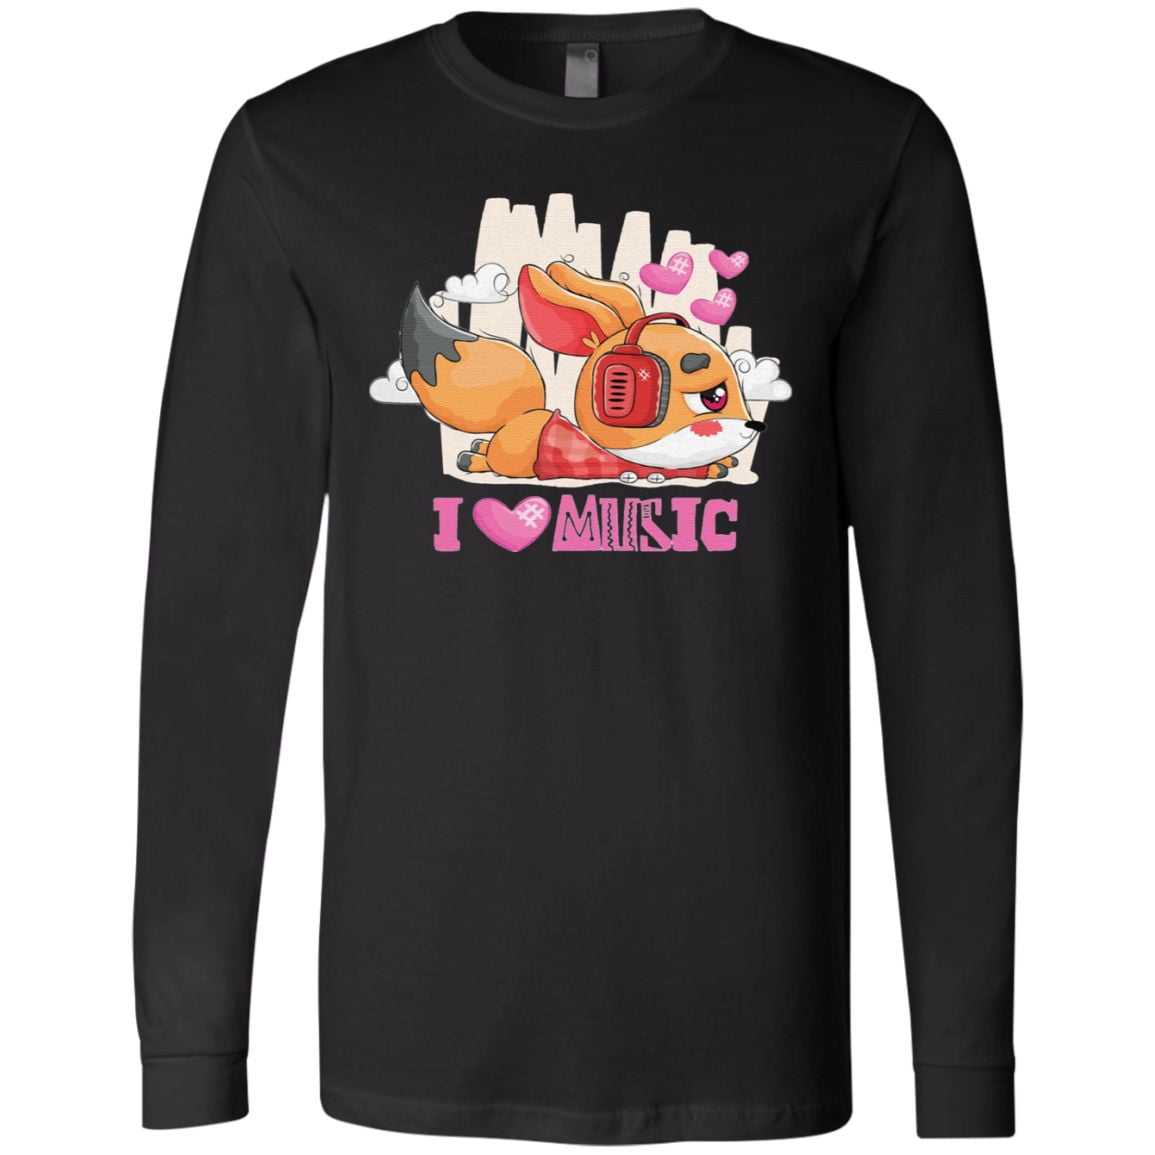 I Love Music – Cute Little Fox Listening To Music With Headphones Classic T-Shirt